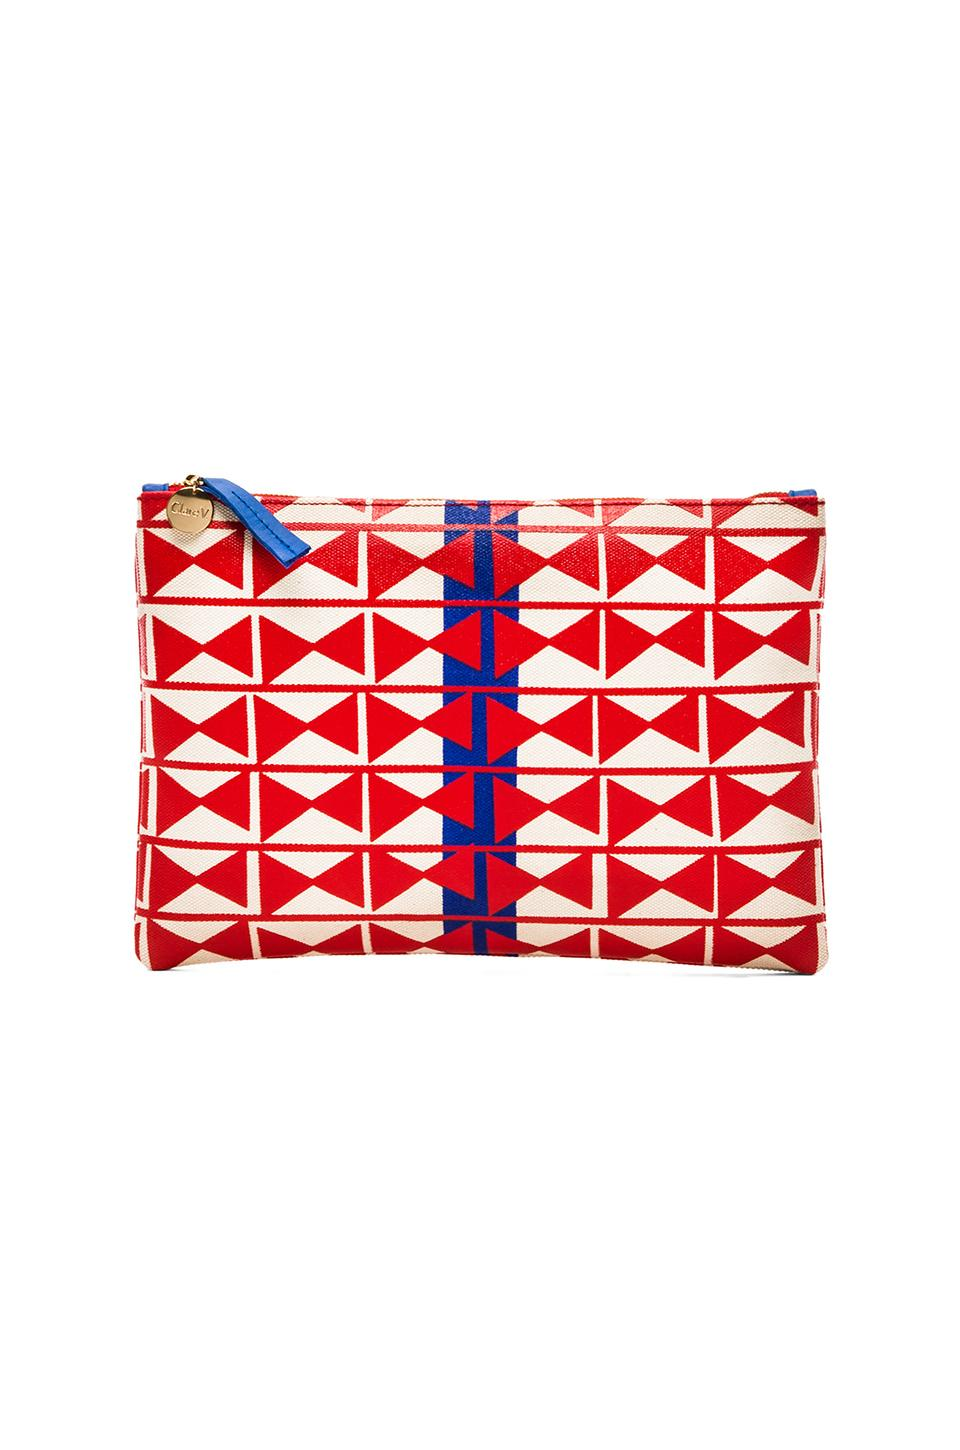 Clare V. Flat Clutch in Red Hour Glass